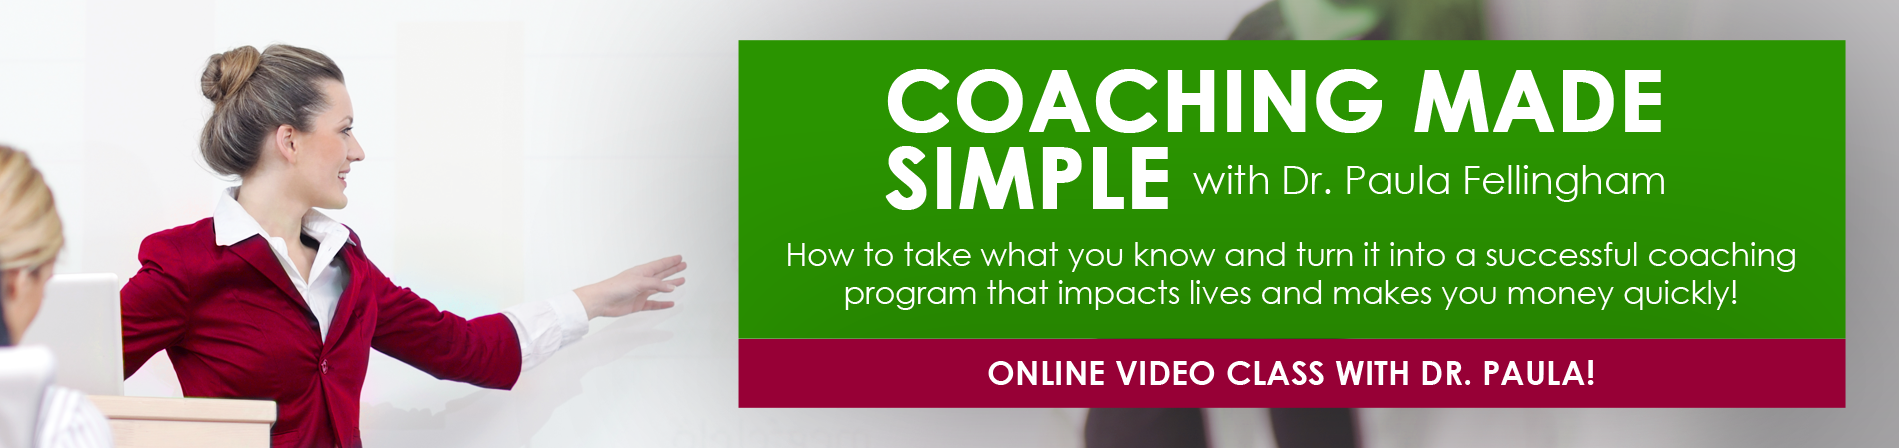 Coaching-Made-Simple-Banner-2017